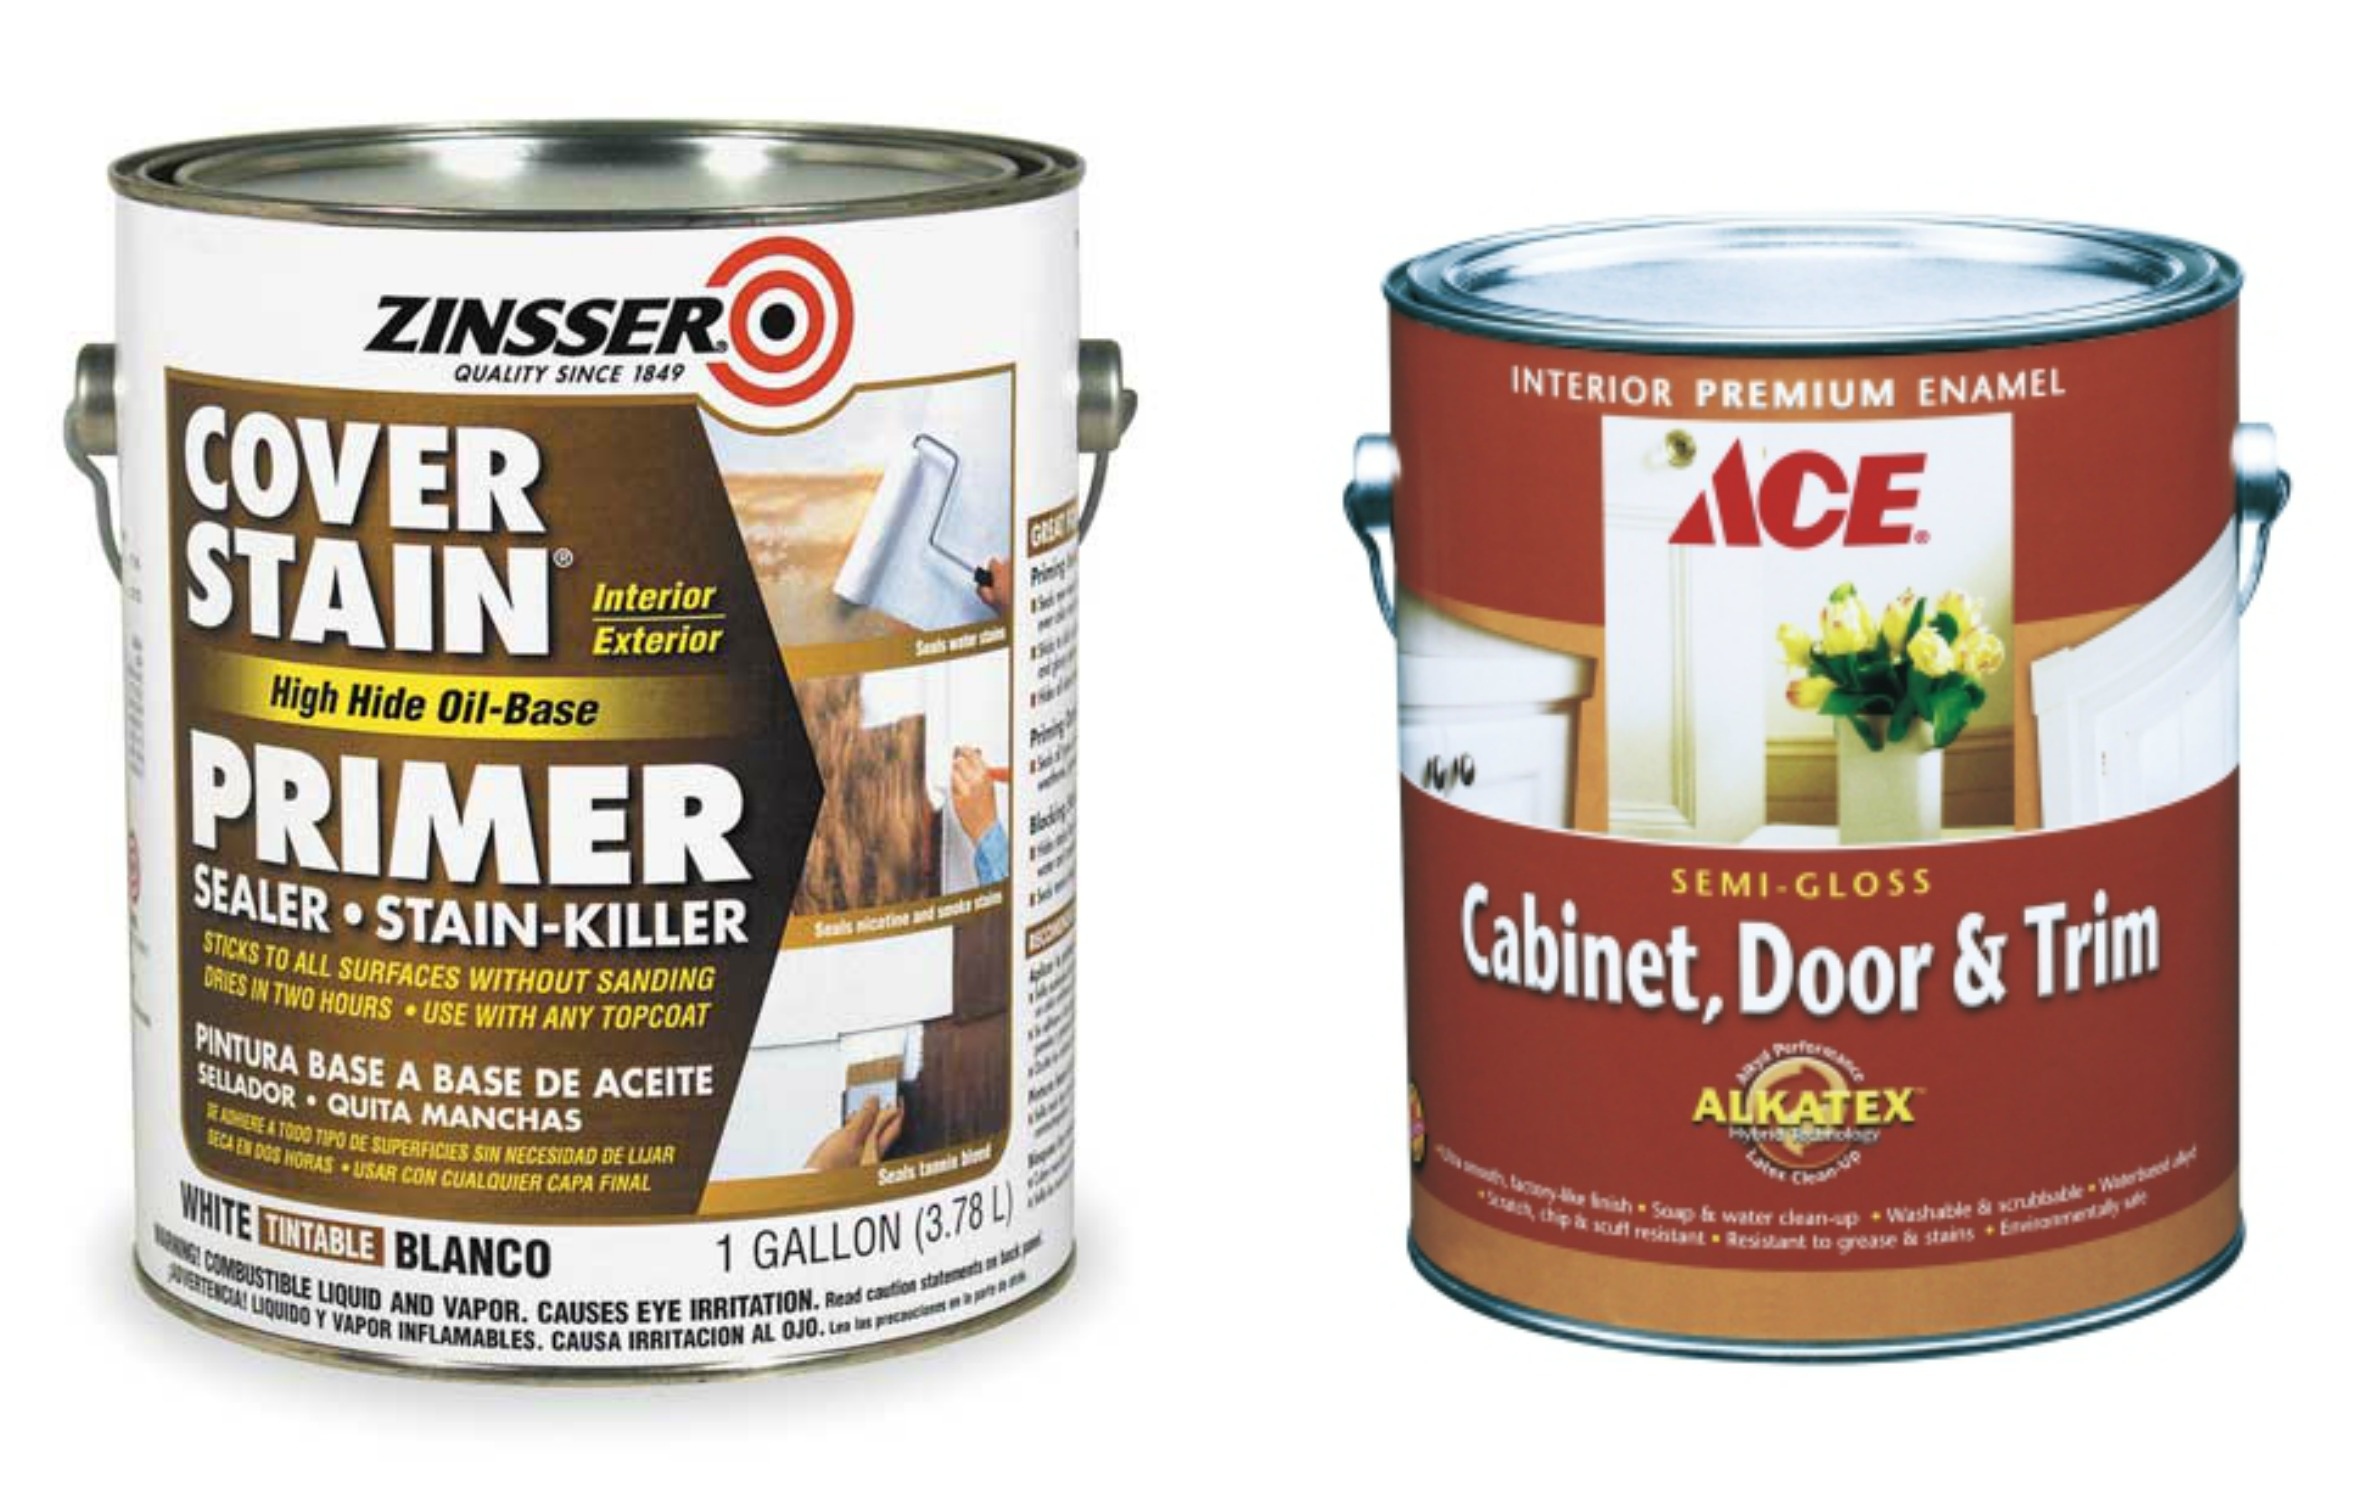 How To Prep Kitchen Cabinets For Painting A Diy Project Painting Kitchen Cabinets